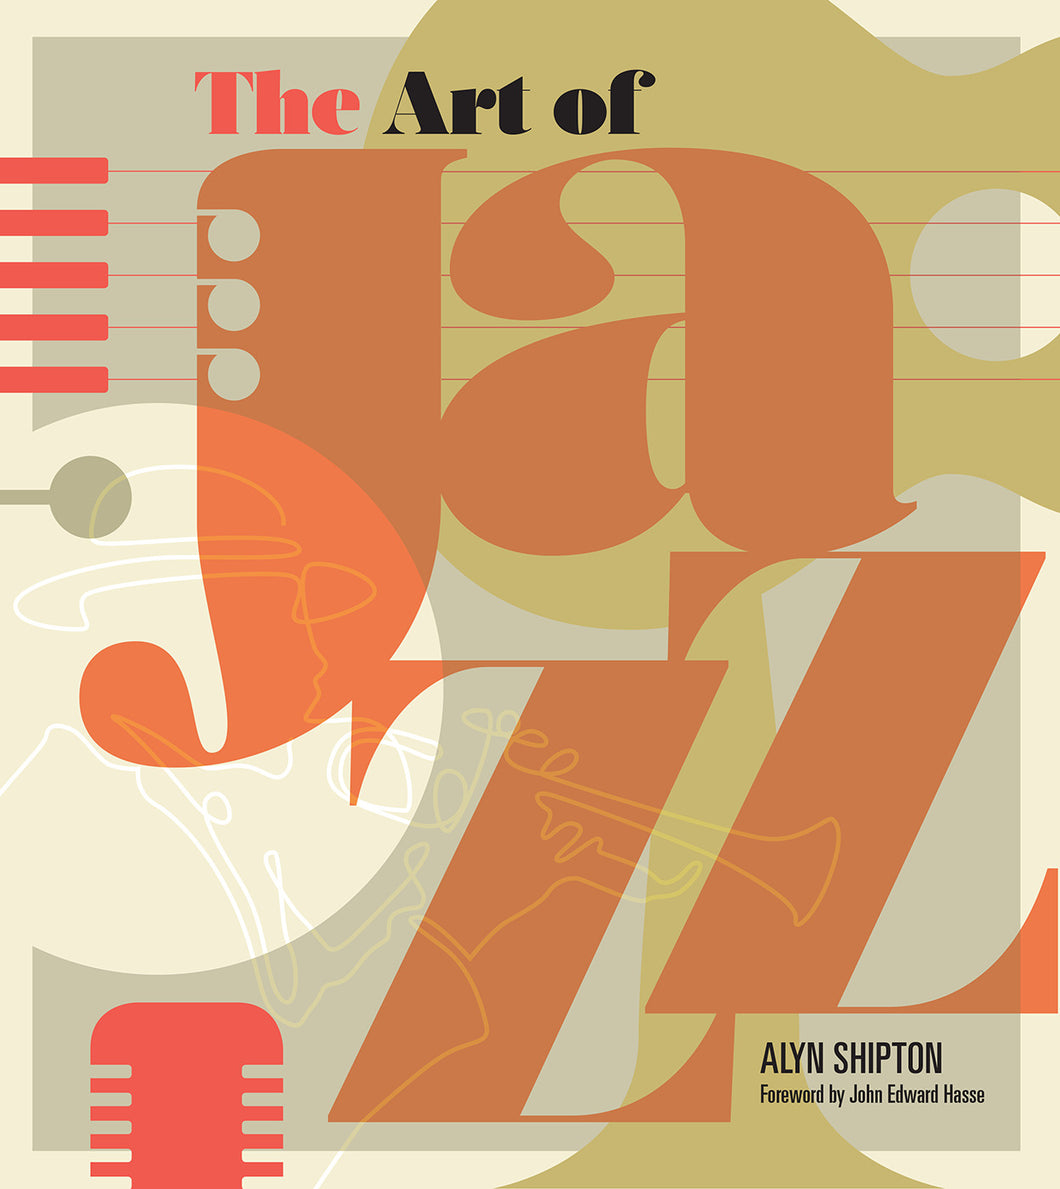 The Art of Jazz